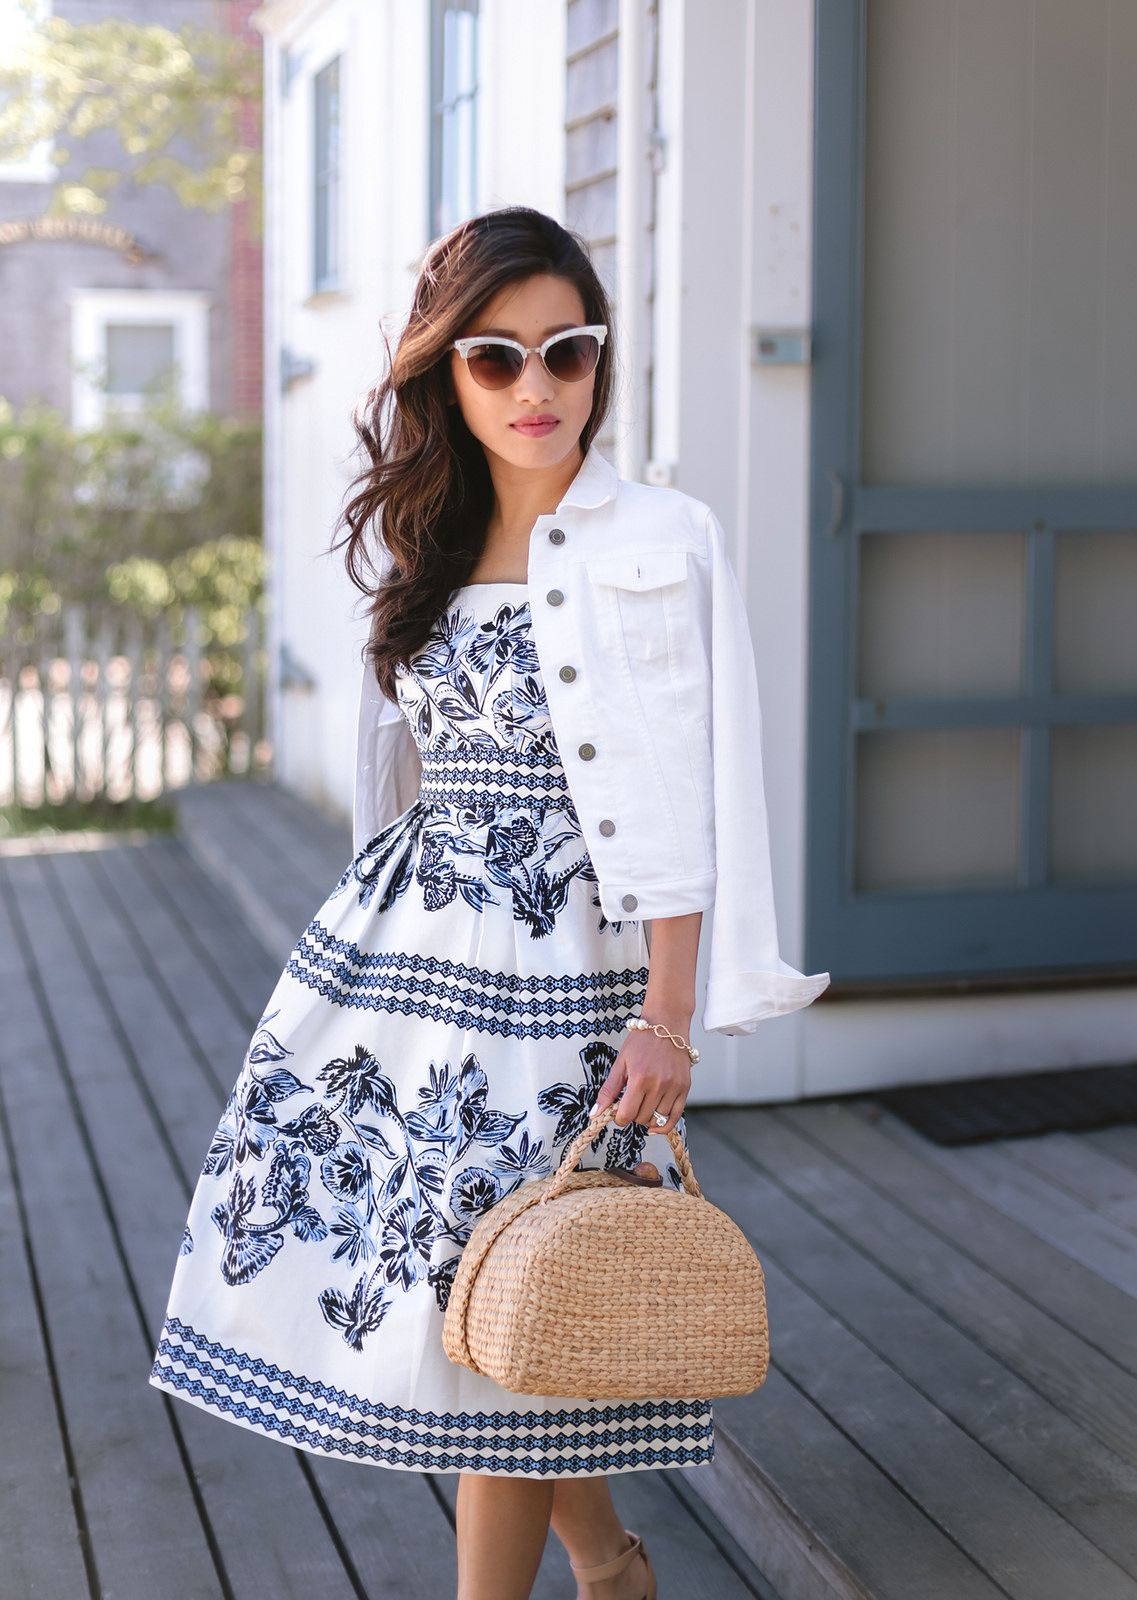 Nantucket Clic New England Style Outfit Straw Basket Bag